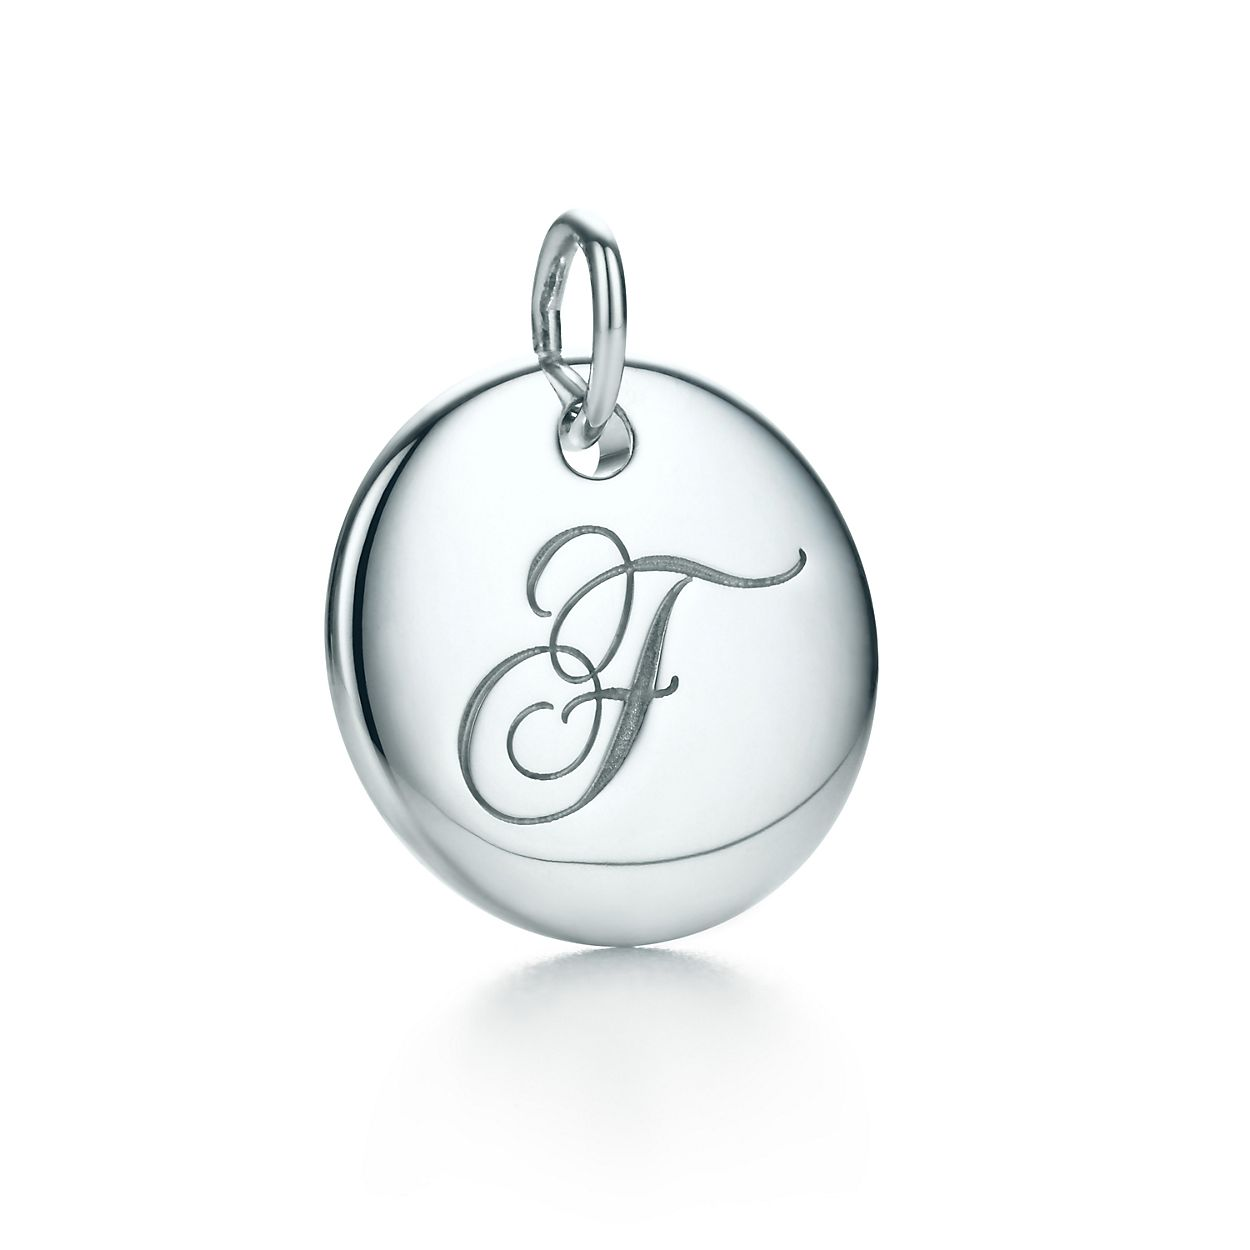 Tiffany Charms alphabet charm in sterling silver Letters A-Z available - Size N Tiffany & Co. 9MNTszXJ